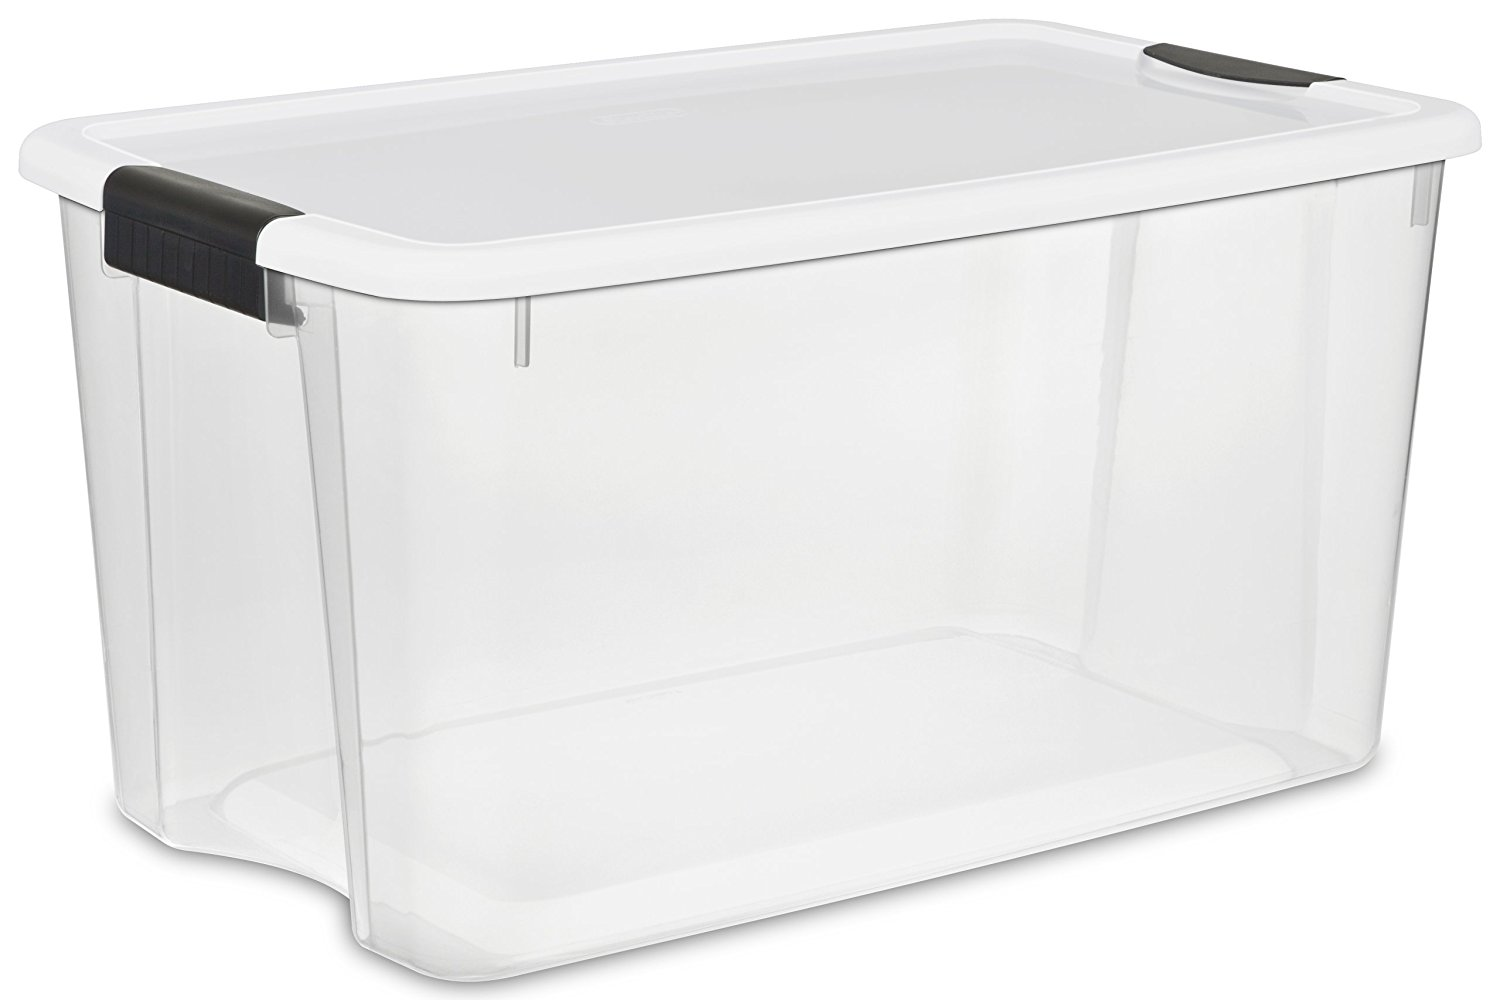 Sterilite 19889804 70 Quart/66 Liter Ultra Latch Box, Clear with a White Lid and Black Latches, 4-Pack